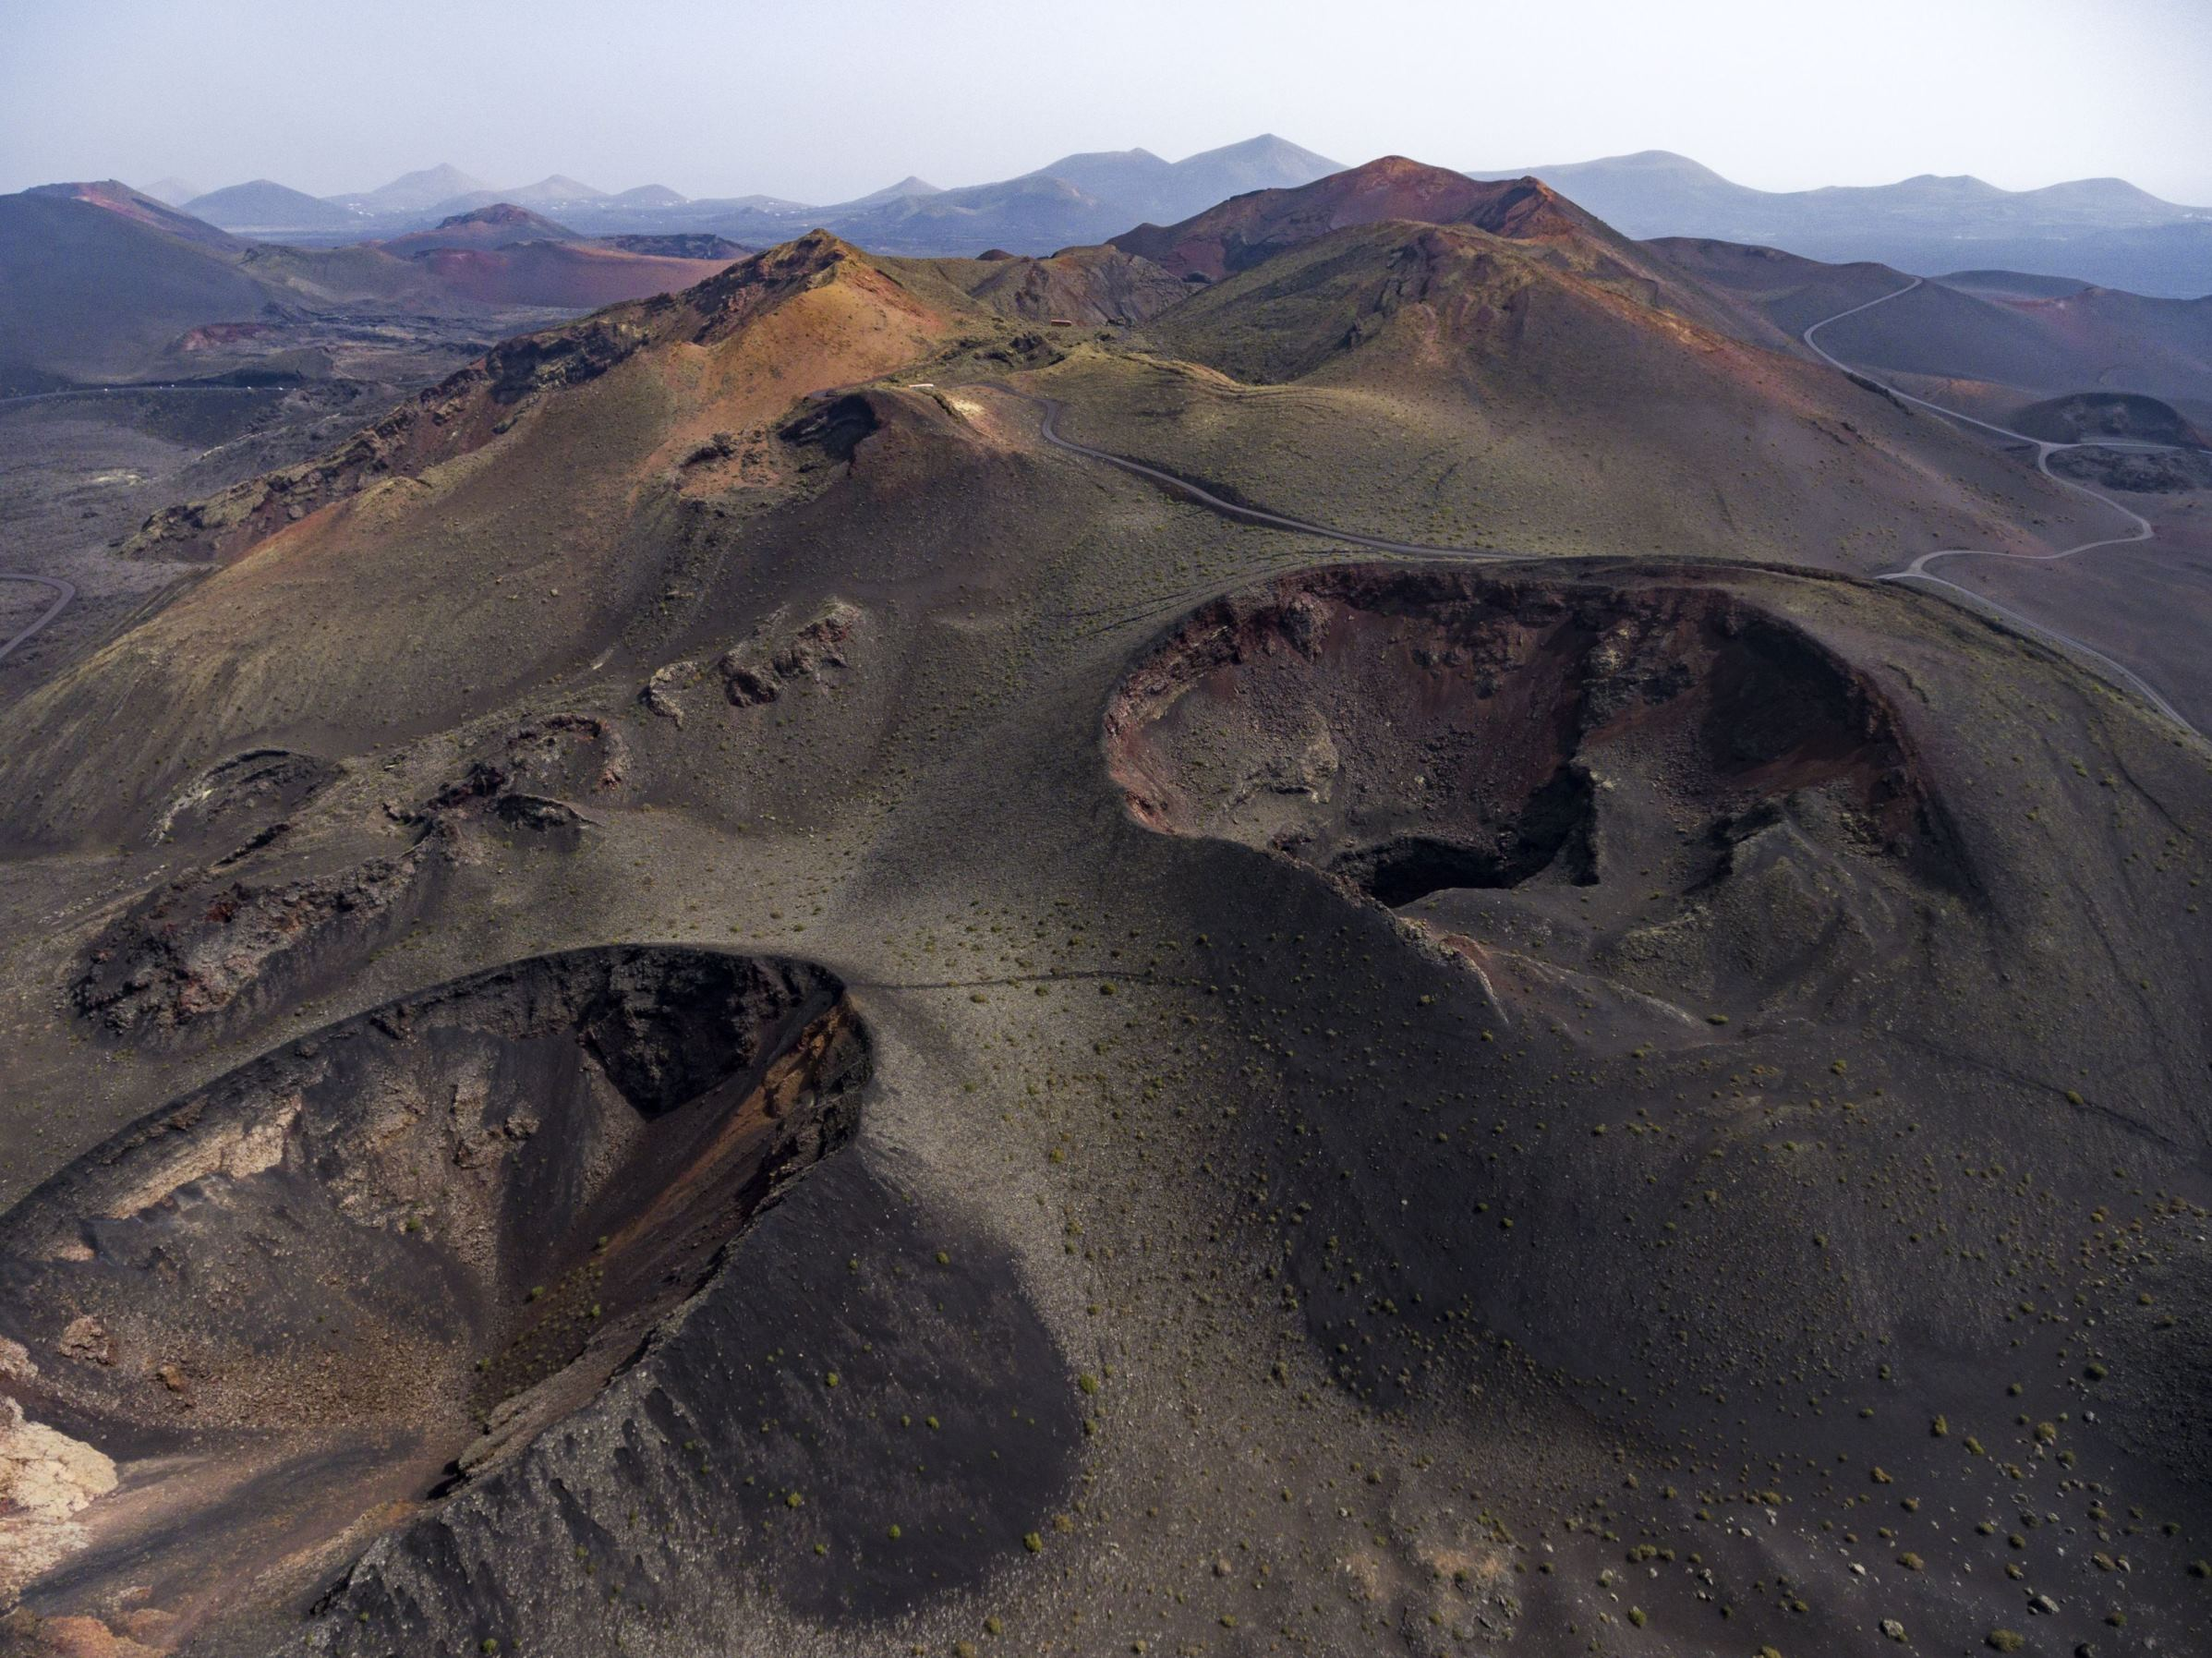 Slide 58 of 100: Much of Lanzarote has been shaped by devastating volcanic eruptions during the 18th century, leaving behind a lunar type landscape, black beaches and locations such as the Timanfaya National Park, which is home to an active volcano that gives the park its name.